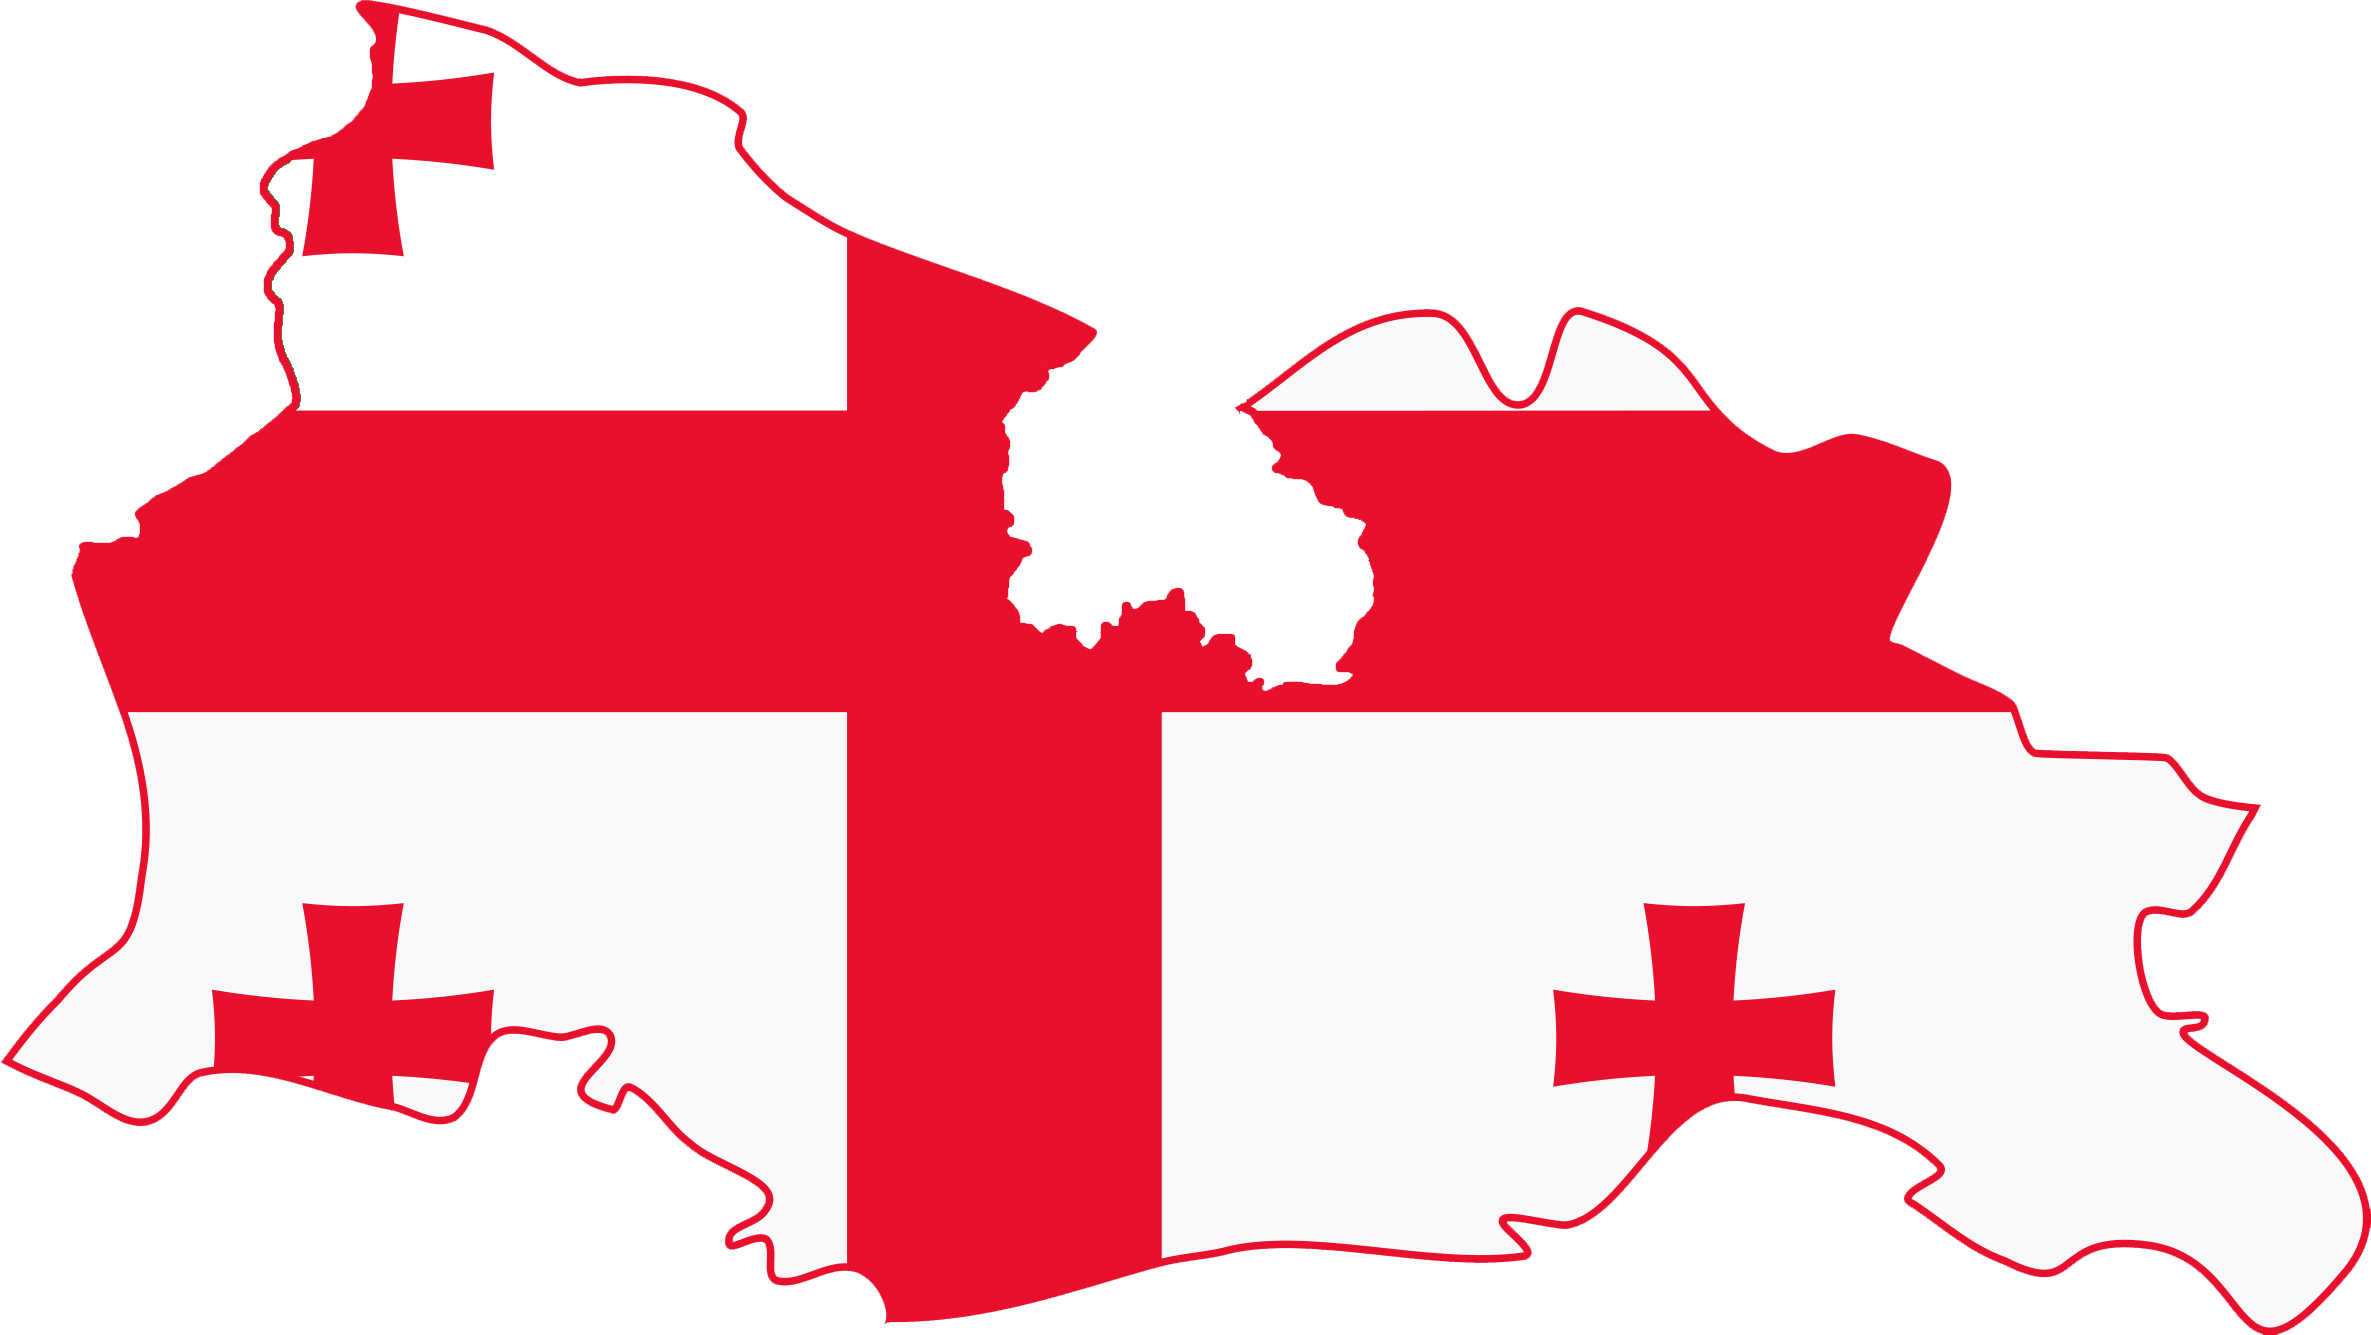 FileFlag Map Of Georgia Without Abkhazia And South Ossetiapng - Georgia map 2014